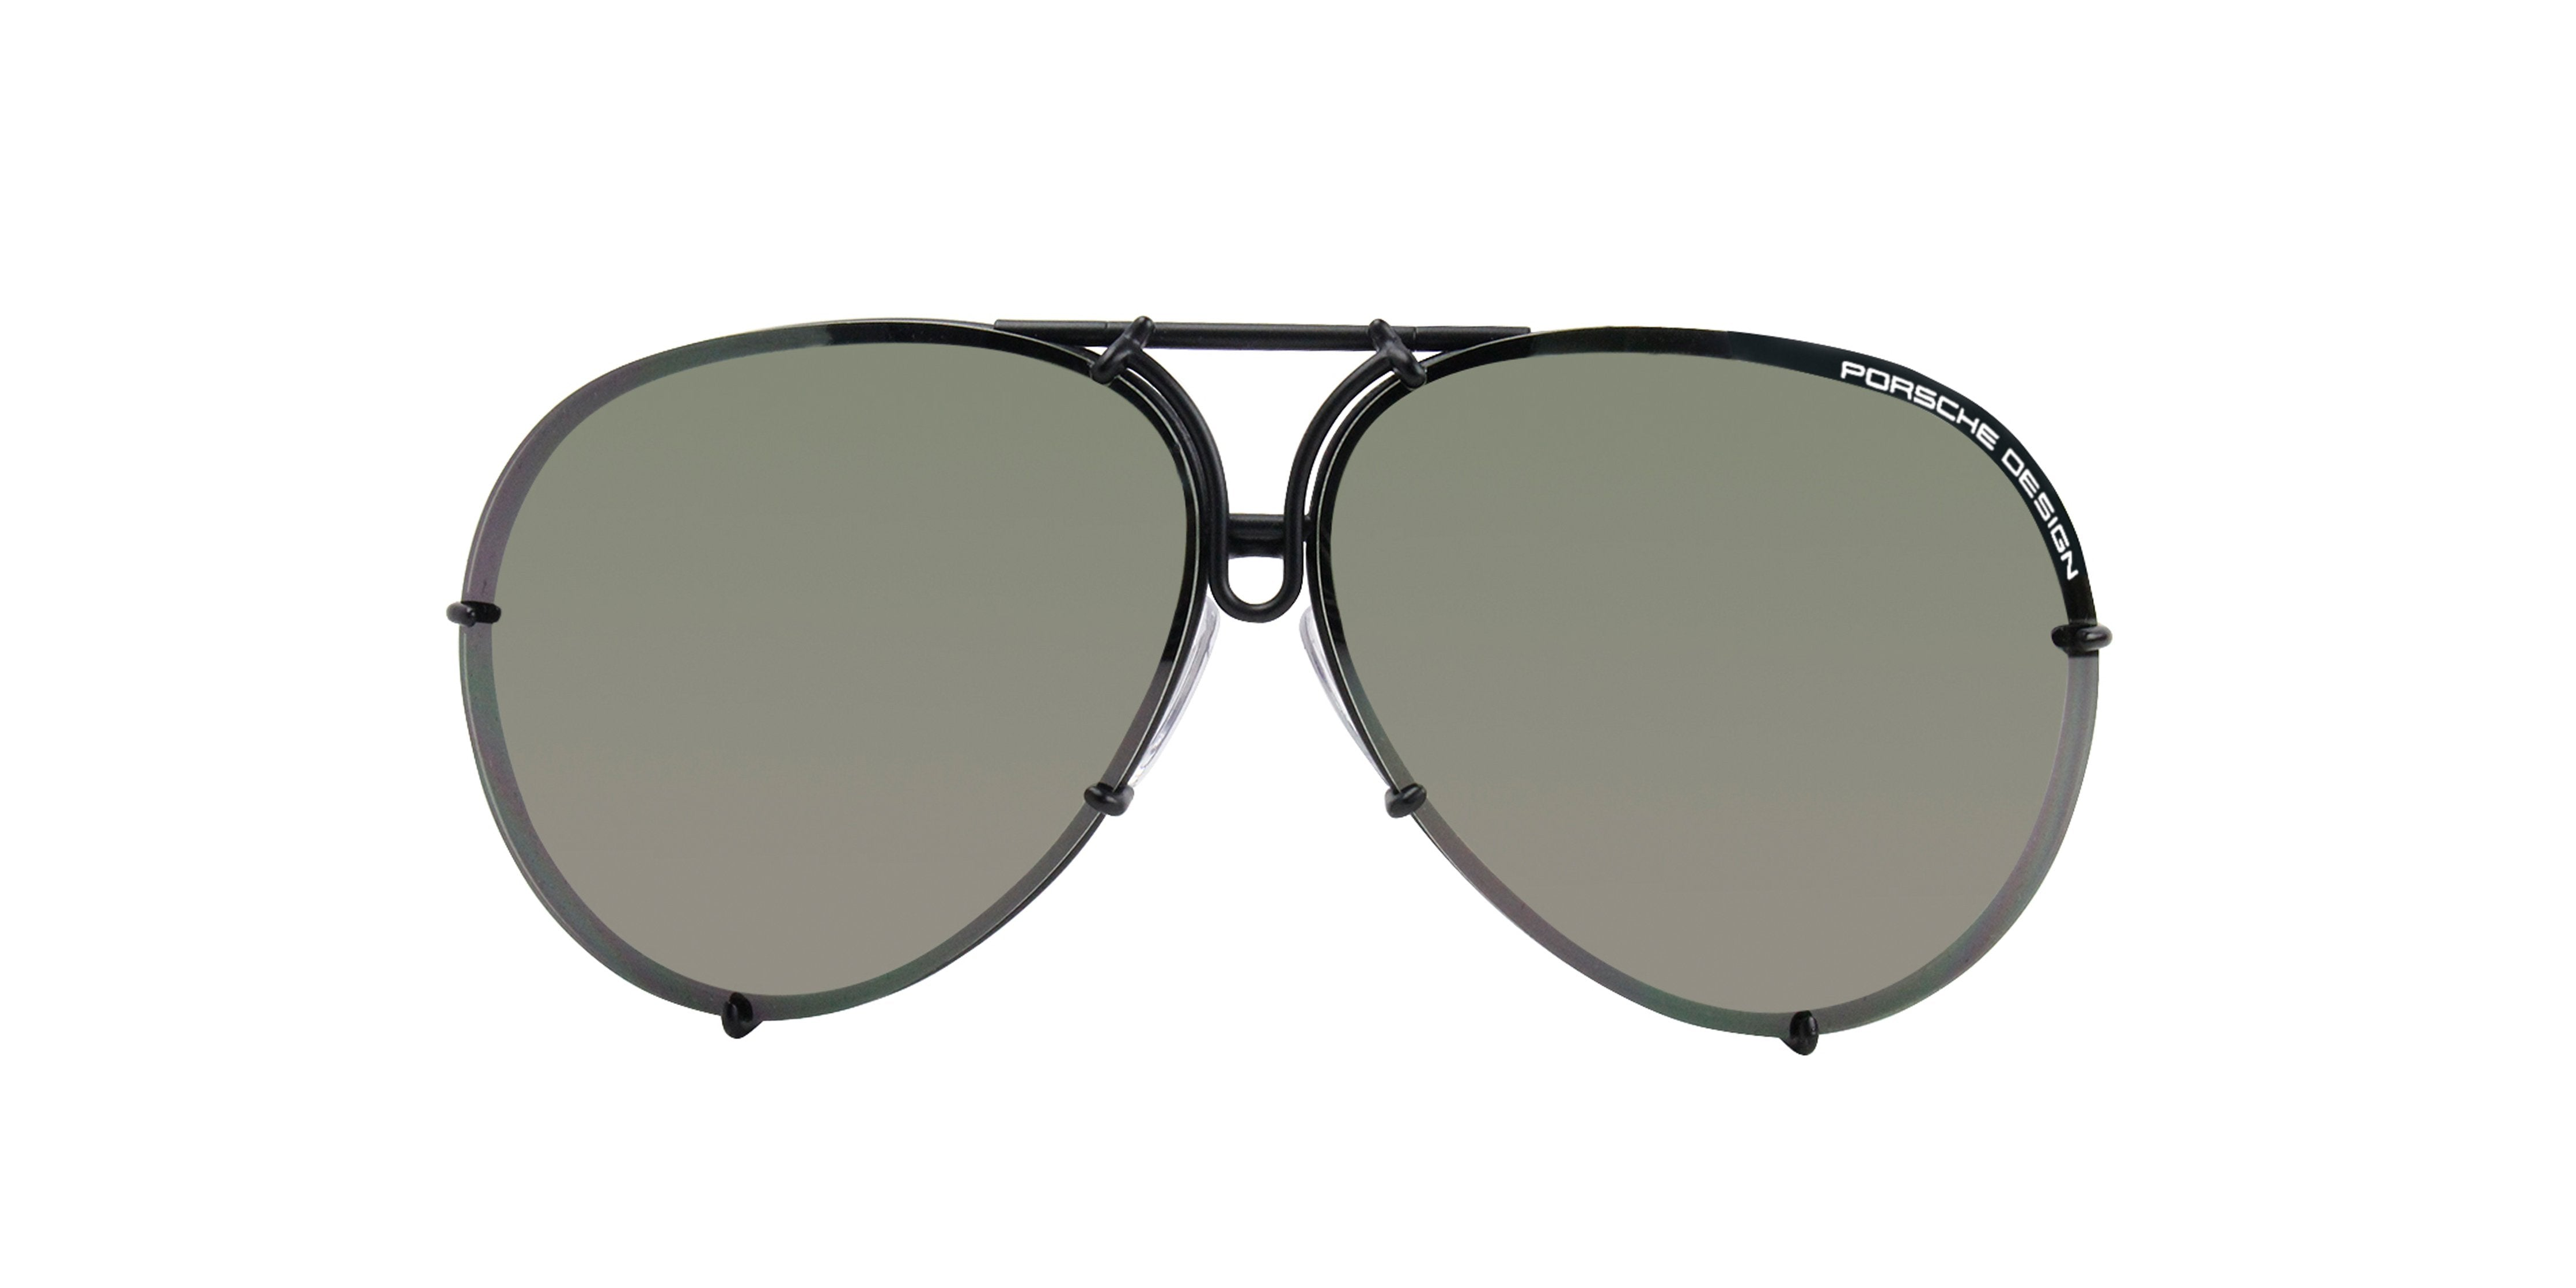 Porsche Design P8478 Black / Green Lens Sunglasses-Sunglasses-Designer Eyes